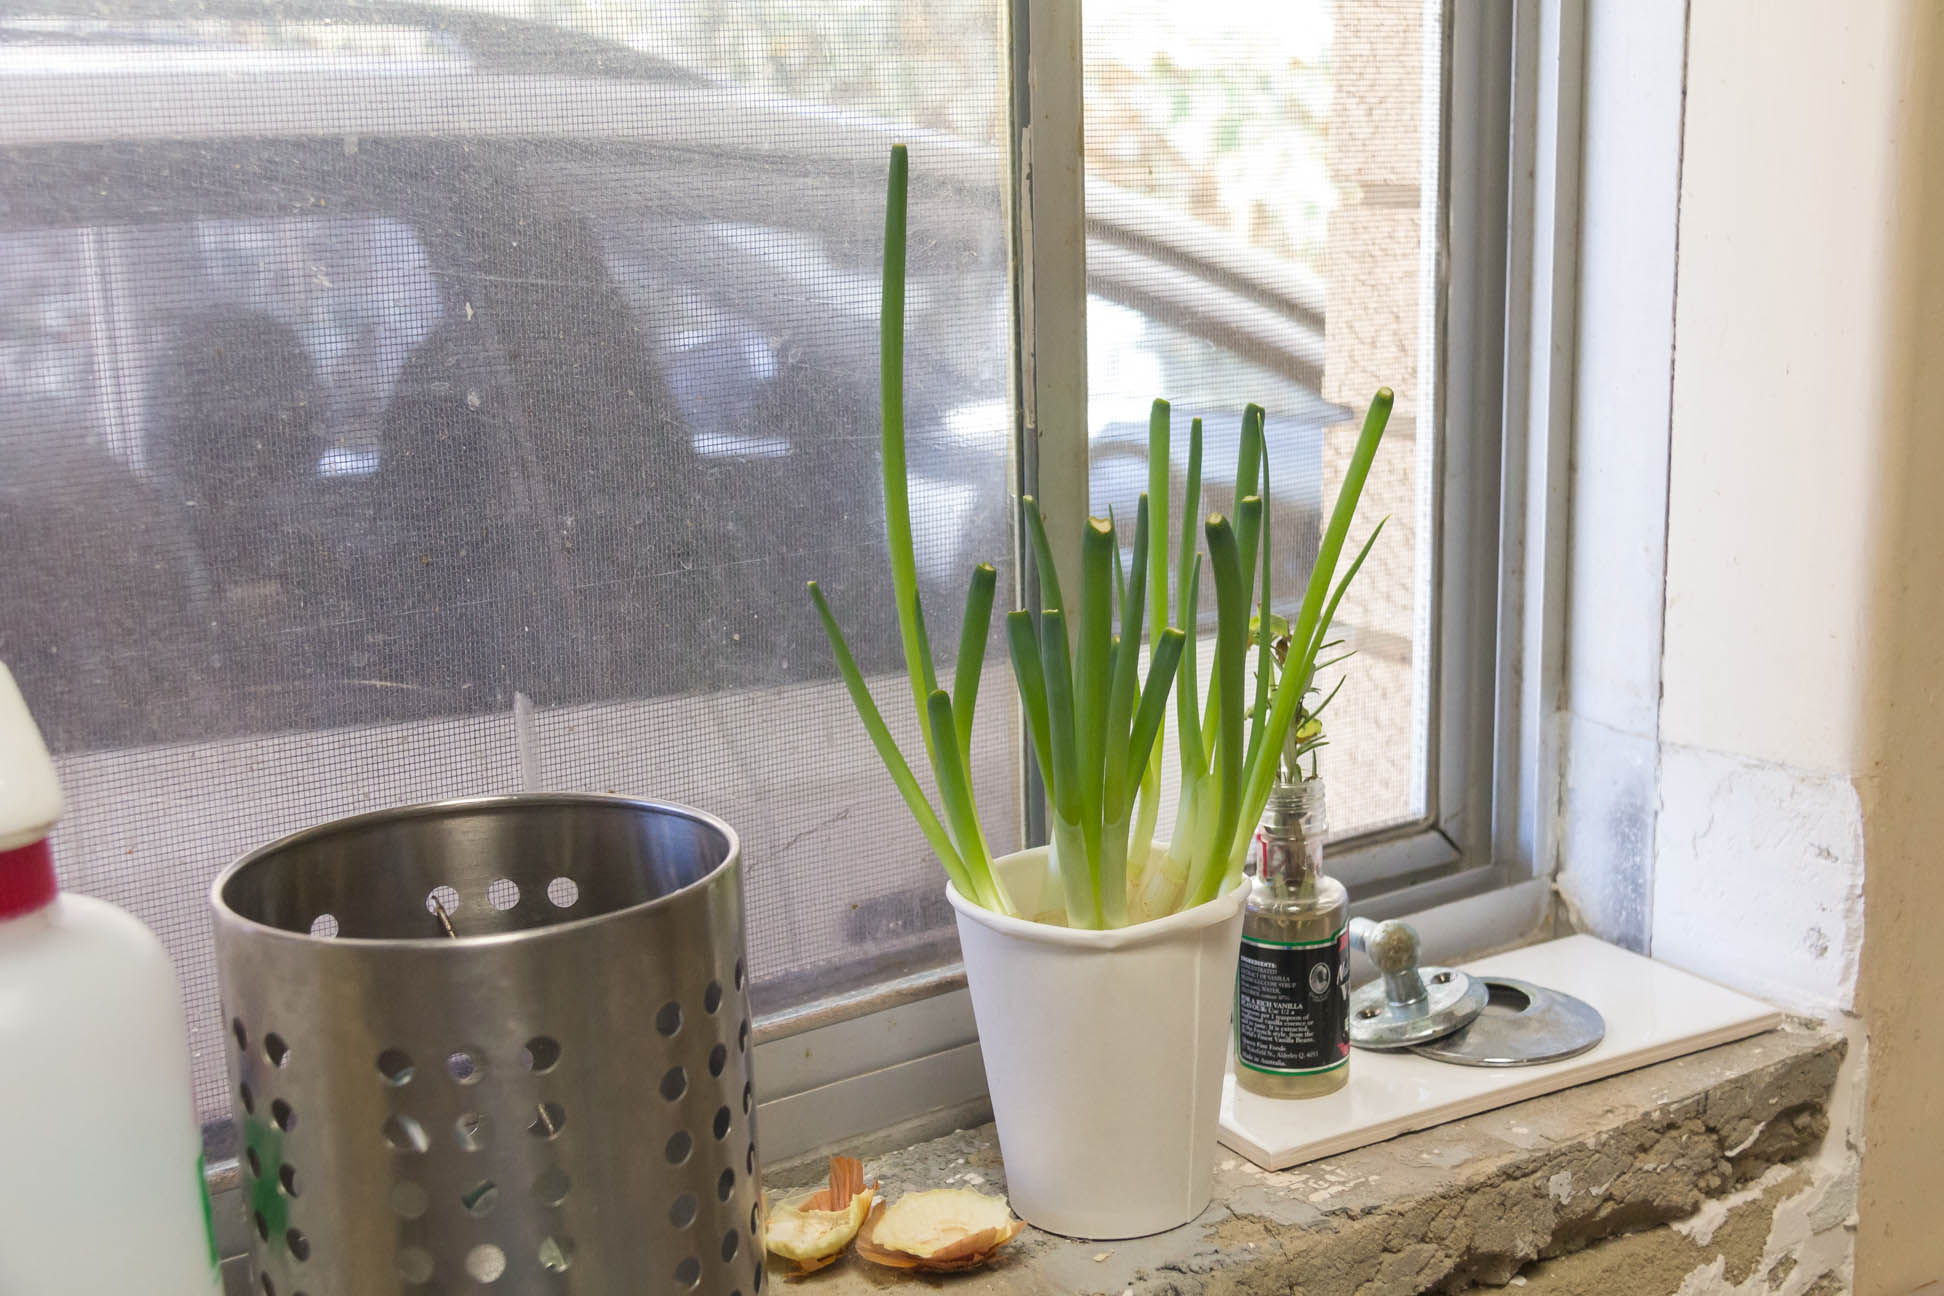 12/01/15 Day 7 of re-growing store-bought Spring Onions.